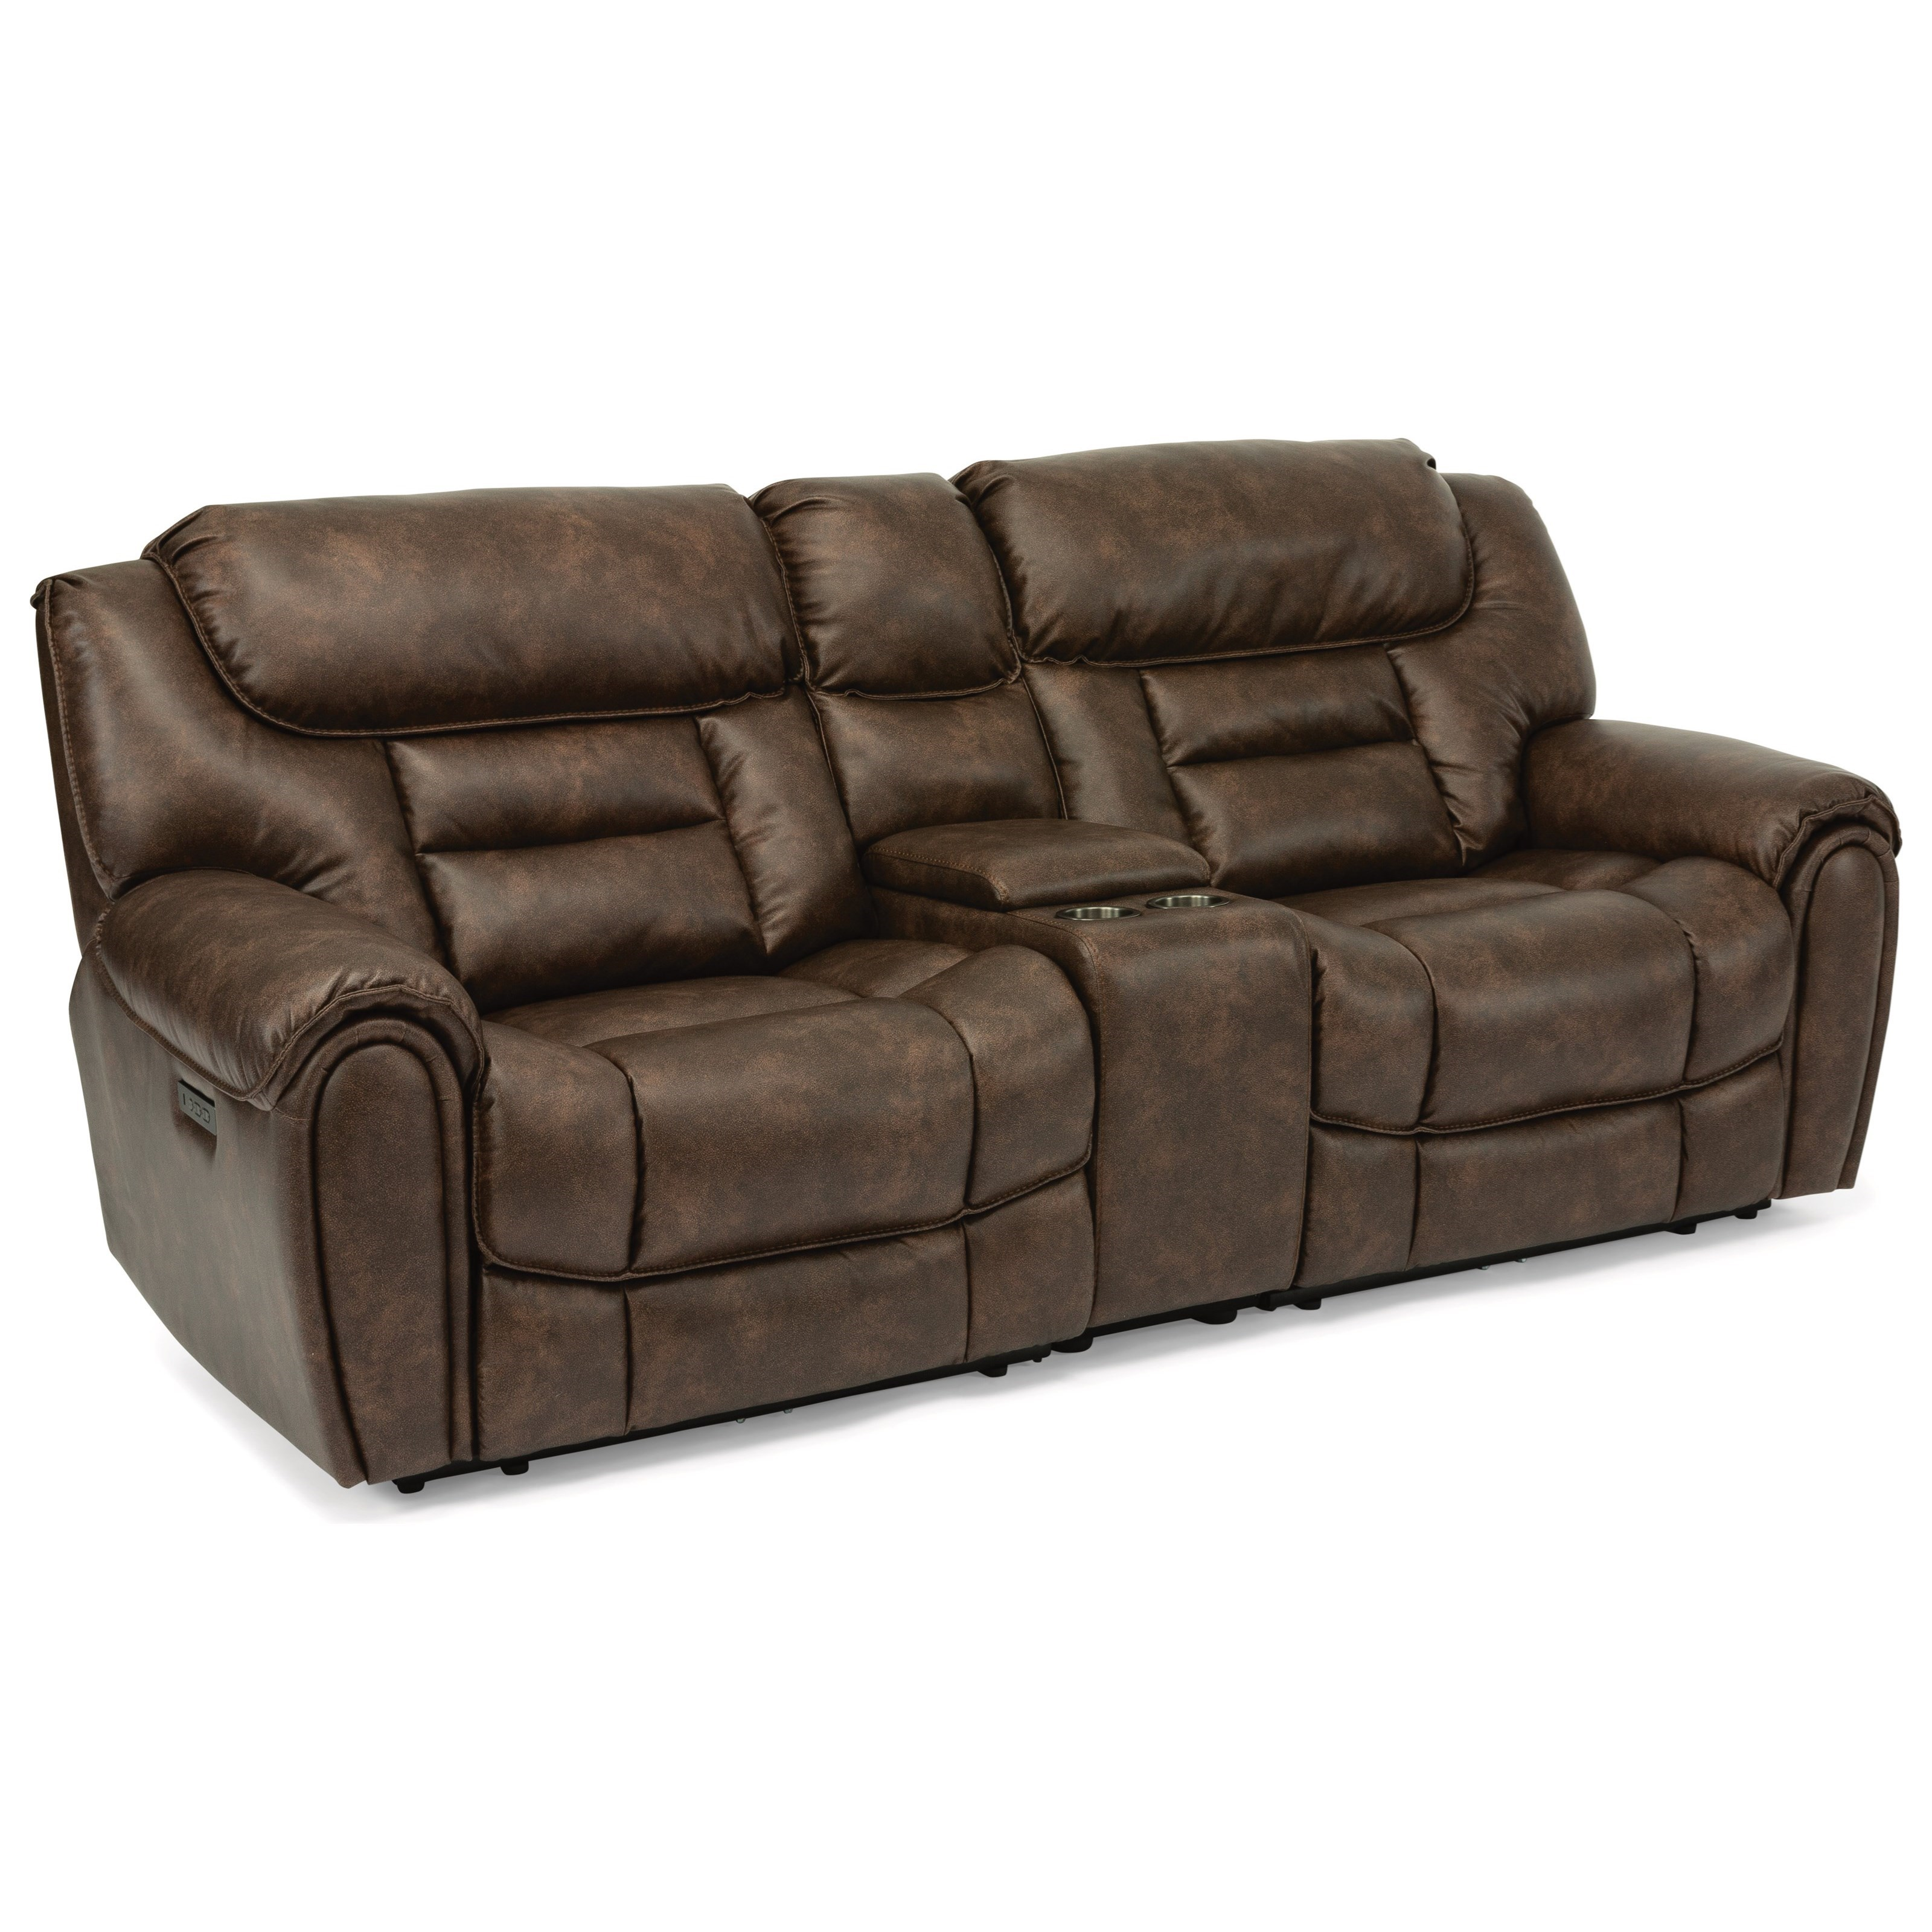 Latitudes - Buster Power Reclining Console Loveseat by Flexsteel at Goods Furniture